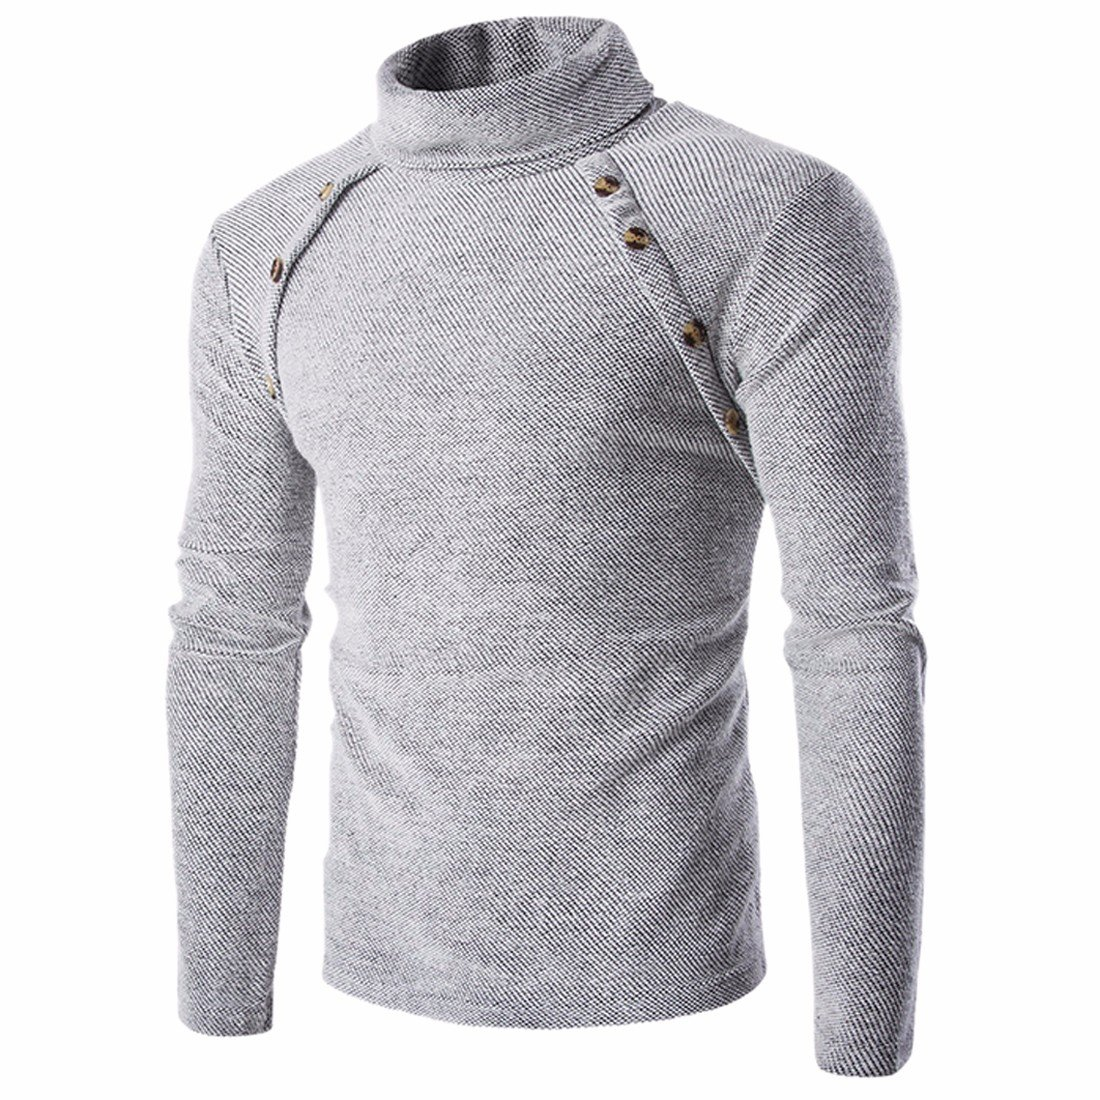 Men's Solid Color Stand Collar Pullover Knitted Sweater QIYUN.Z A2006S0999/1ONE